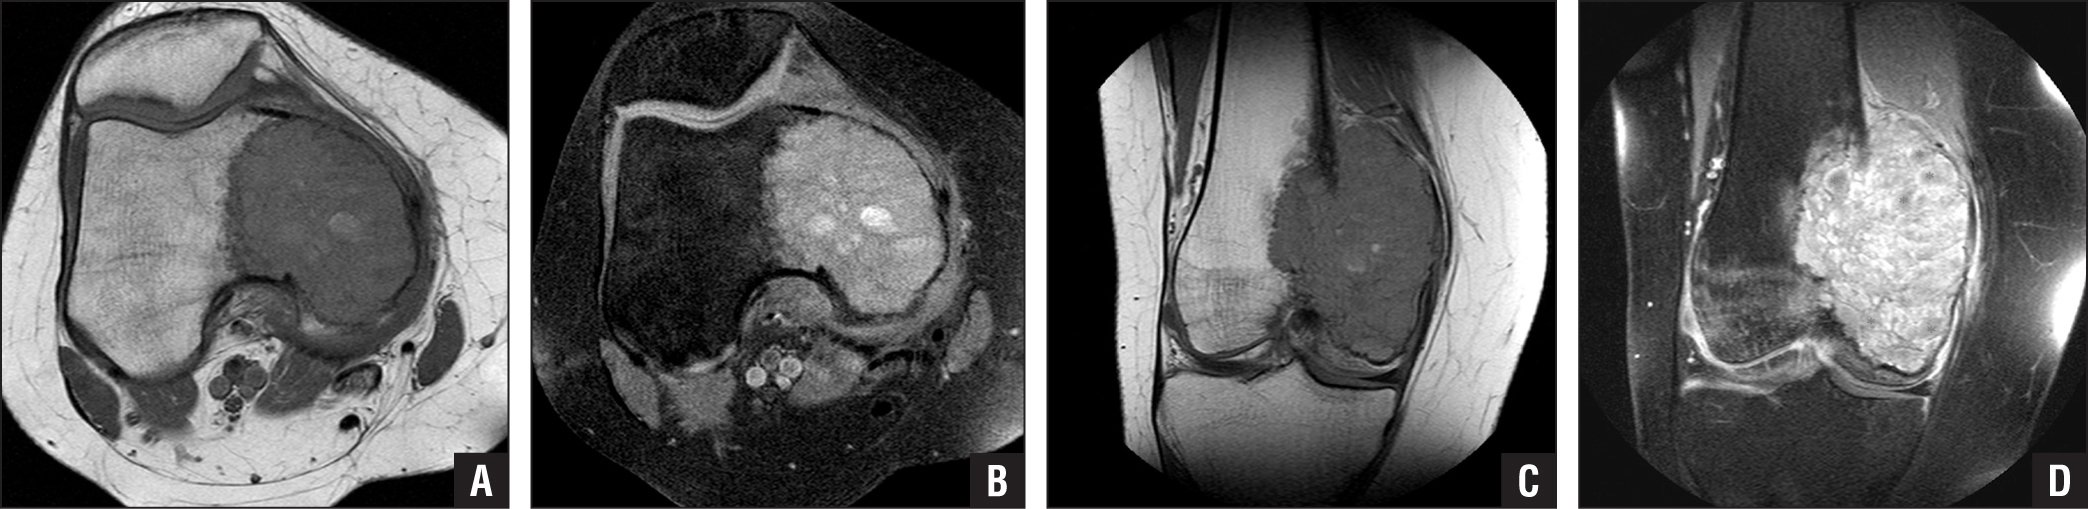 Axial T1 (A), axial T2 (B), coronal T1 (C), and coronal T2 (D) magnetic resonance images of medial femoral condylar destruction from a giant cell tumor. Giant cell tumor demonstrates a low signal with respect to muscle on T1 imaging and a heterogeneously higher signal with respect to muscle on T2 imaging. More than 60% of giant cell tumor lesions contain hemosiderin deposits that create low signal intensity on T2 spin echo sequences.